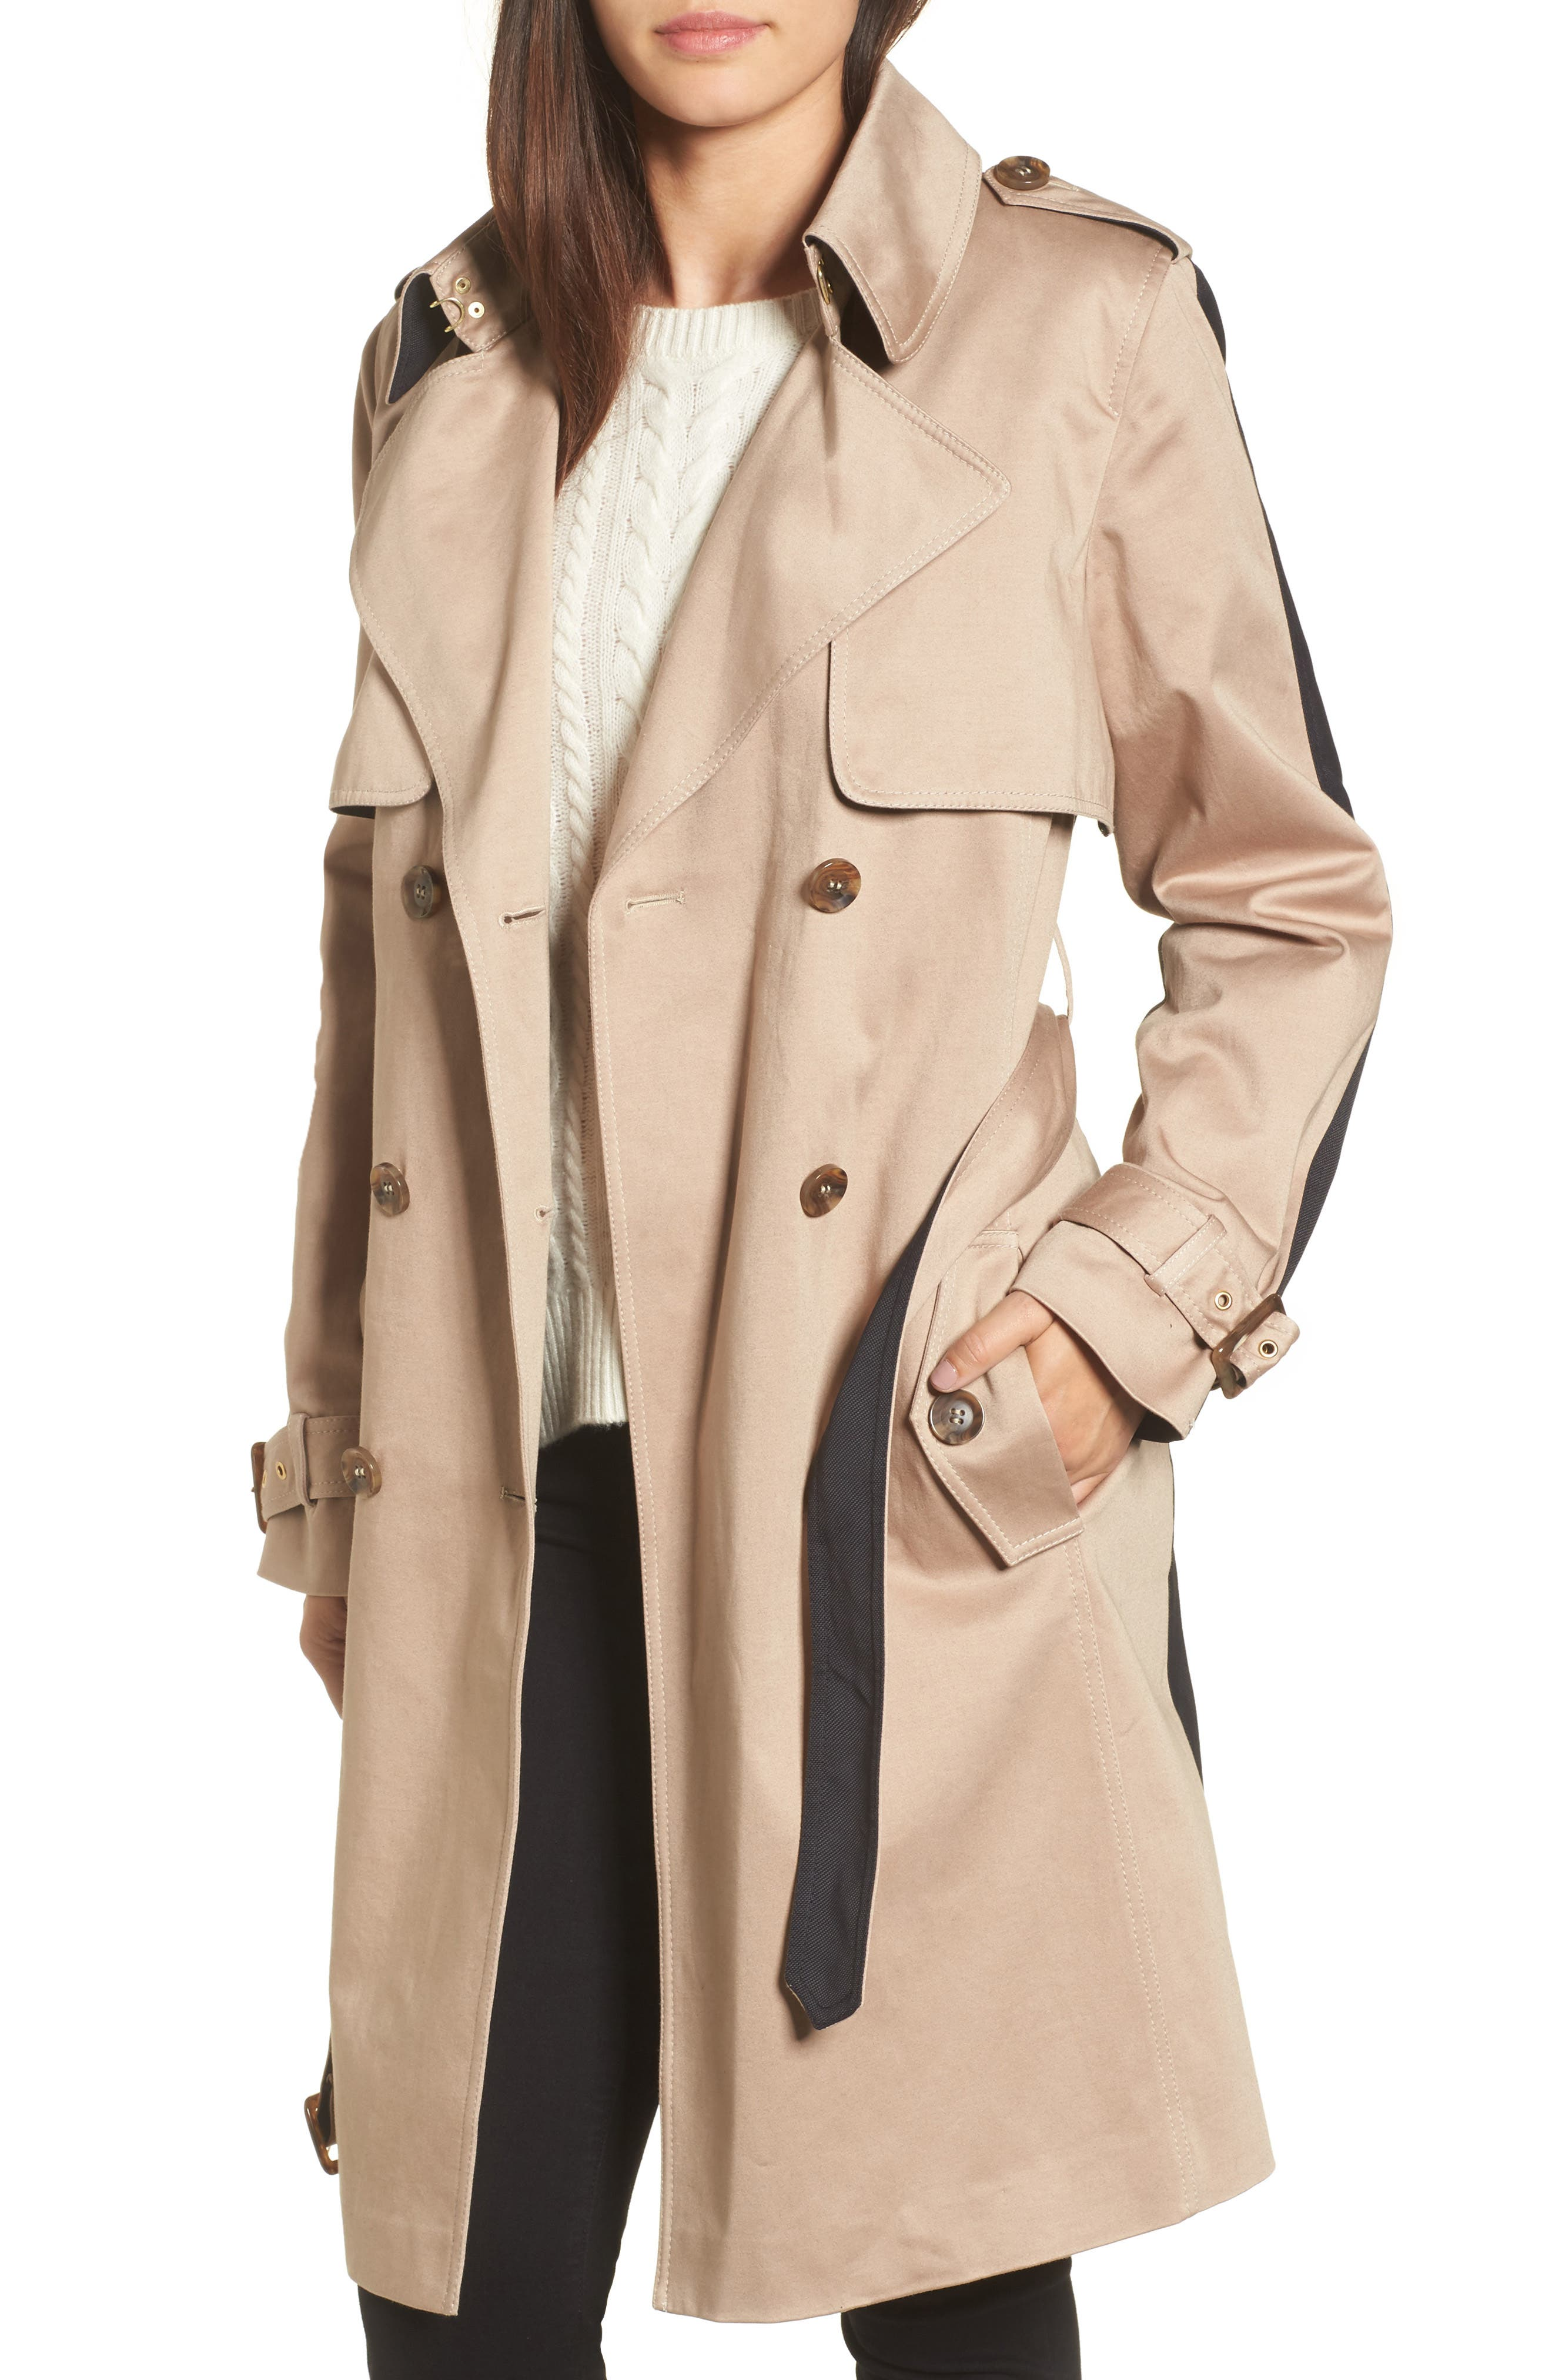 Alternate Image 1 Selected - Trina Turk Allison Two-Tone Trench Coat